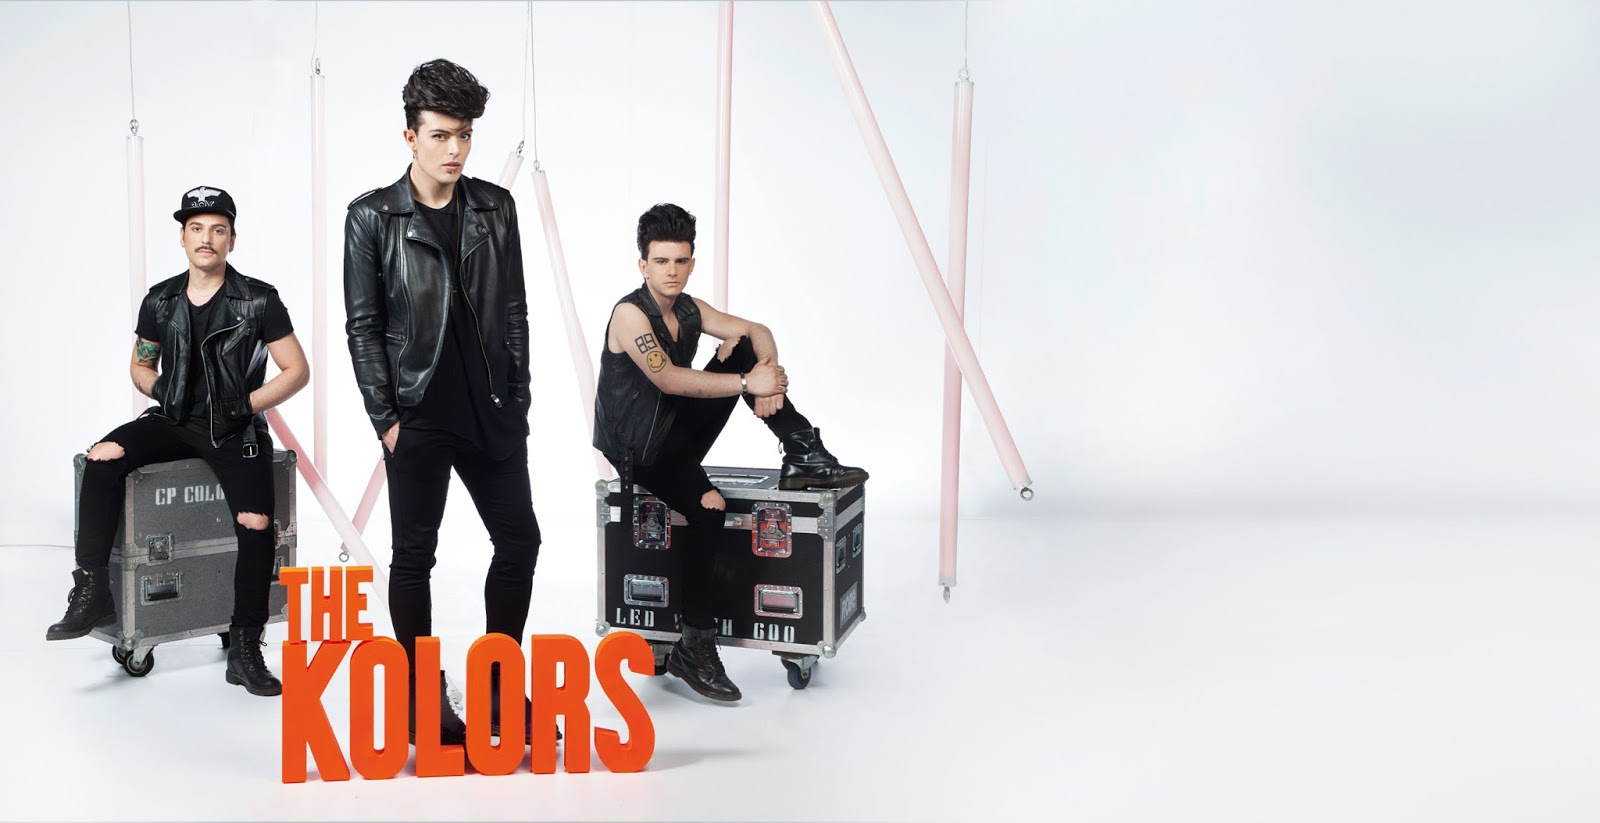 Keep On Smiling - The Kolors: testo, video e traduzione